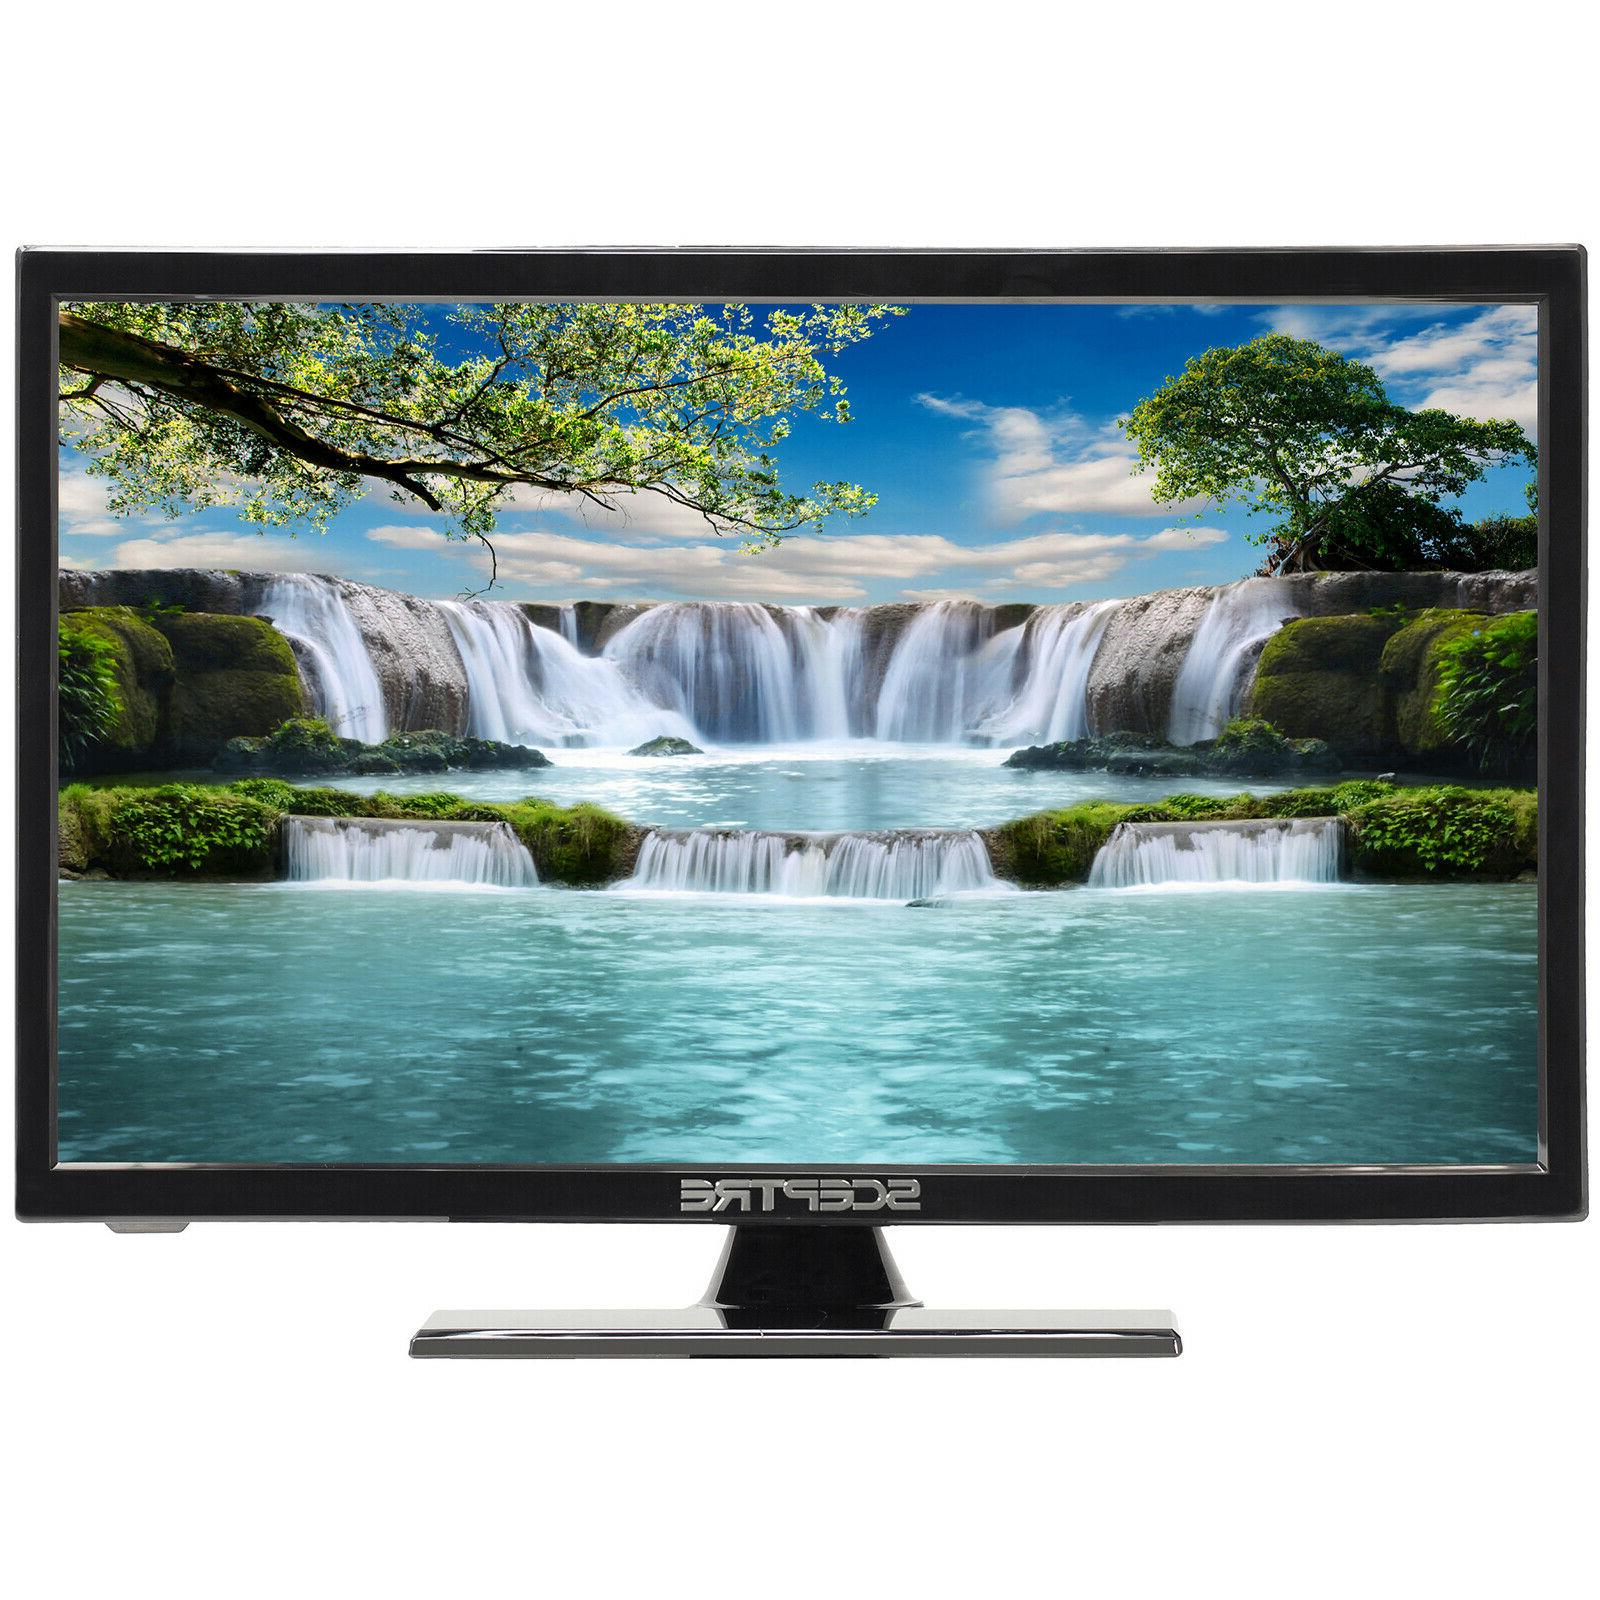 HD LED TV 19 720P 169 Home Stand